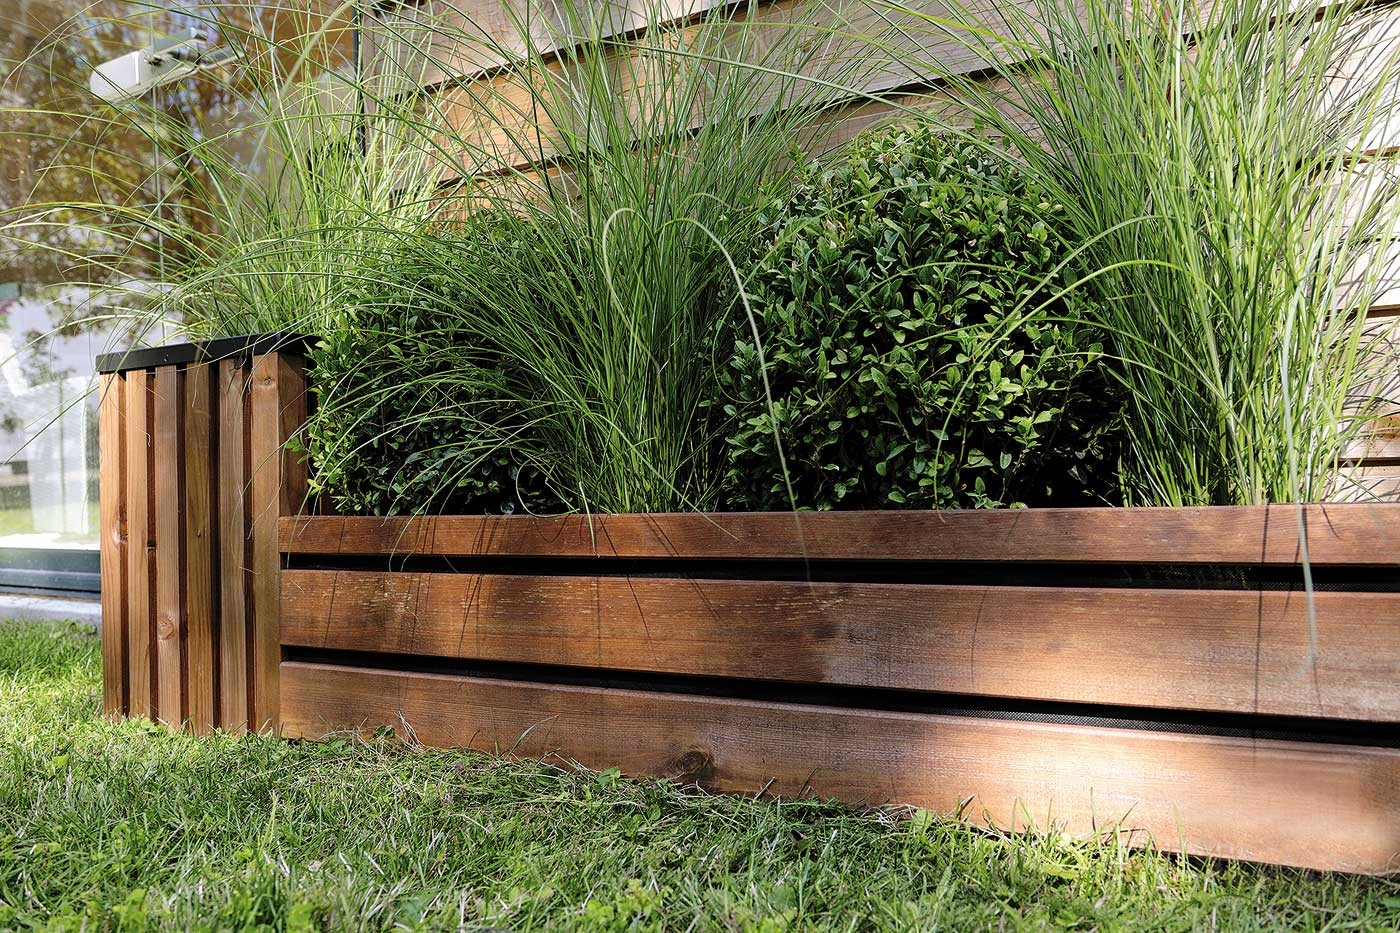 Bordure bois planter 23 43 x 100 cm for Bordure en bois de jardin